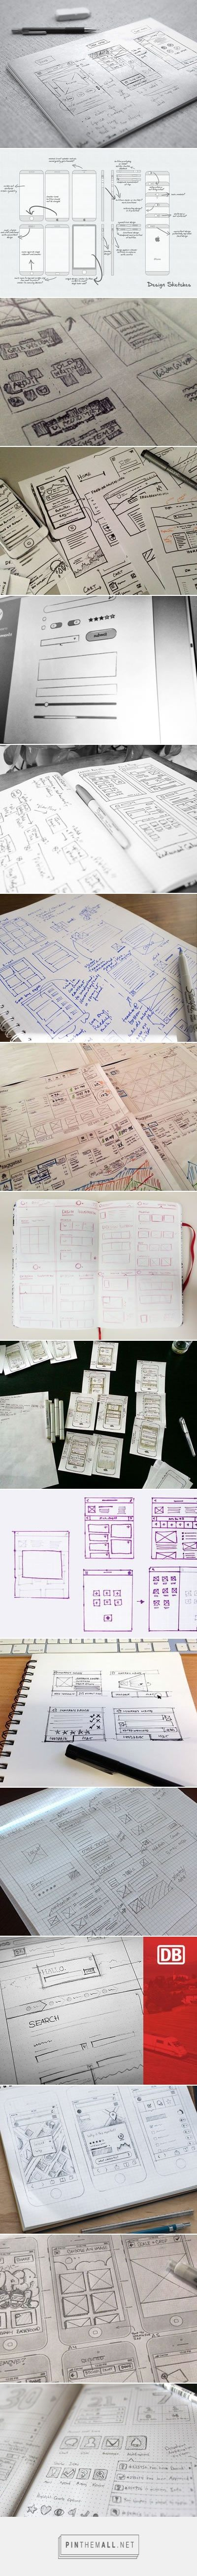 UI & Wireframe Sketches - created via https://pinthemall.net. If you like UX, design, or design thinking, check out theuxblog.com podcast https://itunes.apple.com/us/podcast/ux-blog-user-experience-design/id1127946001?mt=2